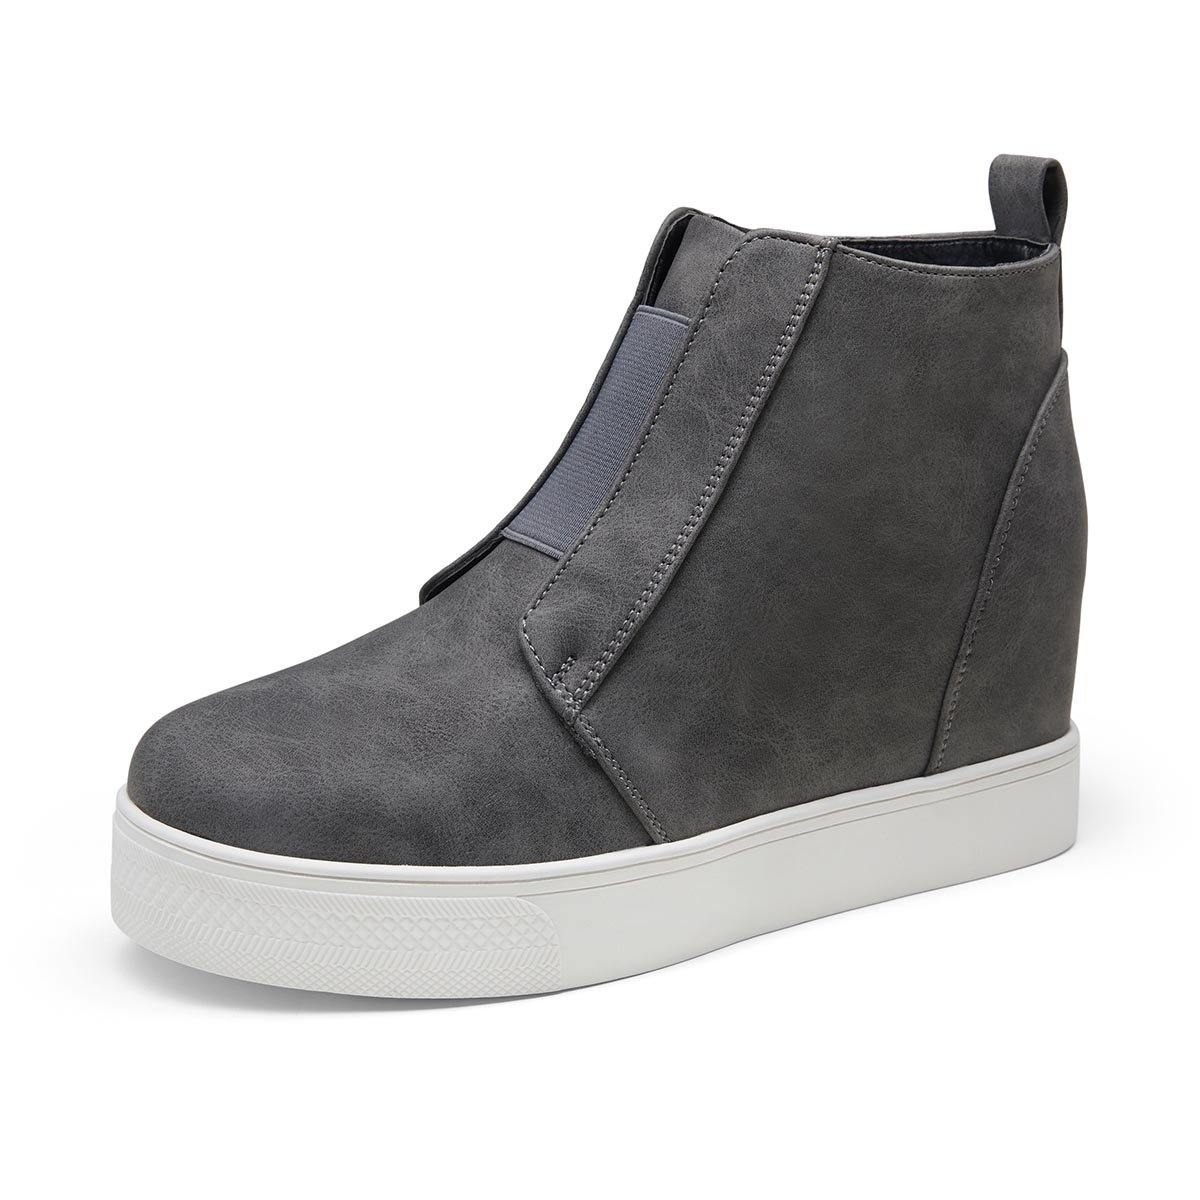 Women's Hidden Wedge Sneakers Casual Platform | Vepose - Top shoes club